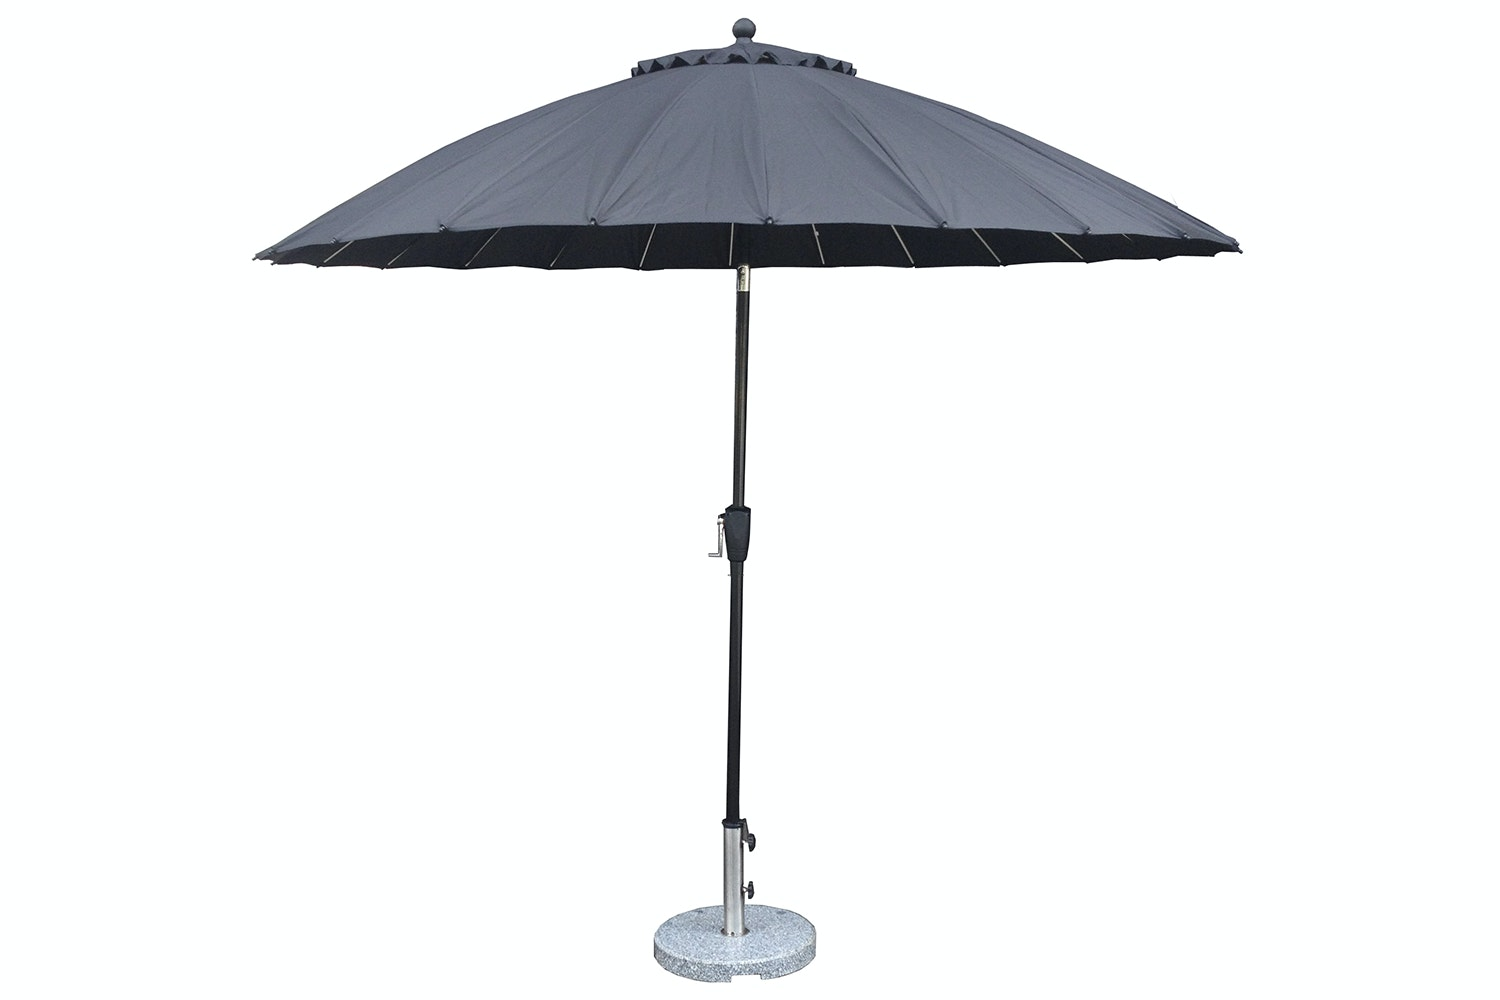 Oriental 2.7m Black Outdoor Umbrella with Base by Peros